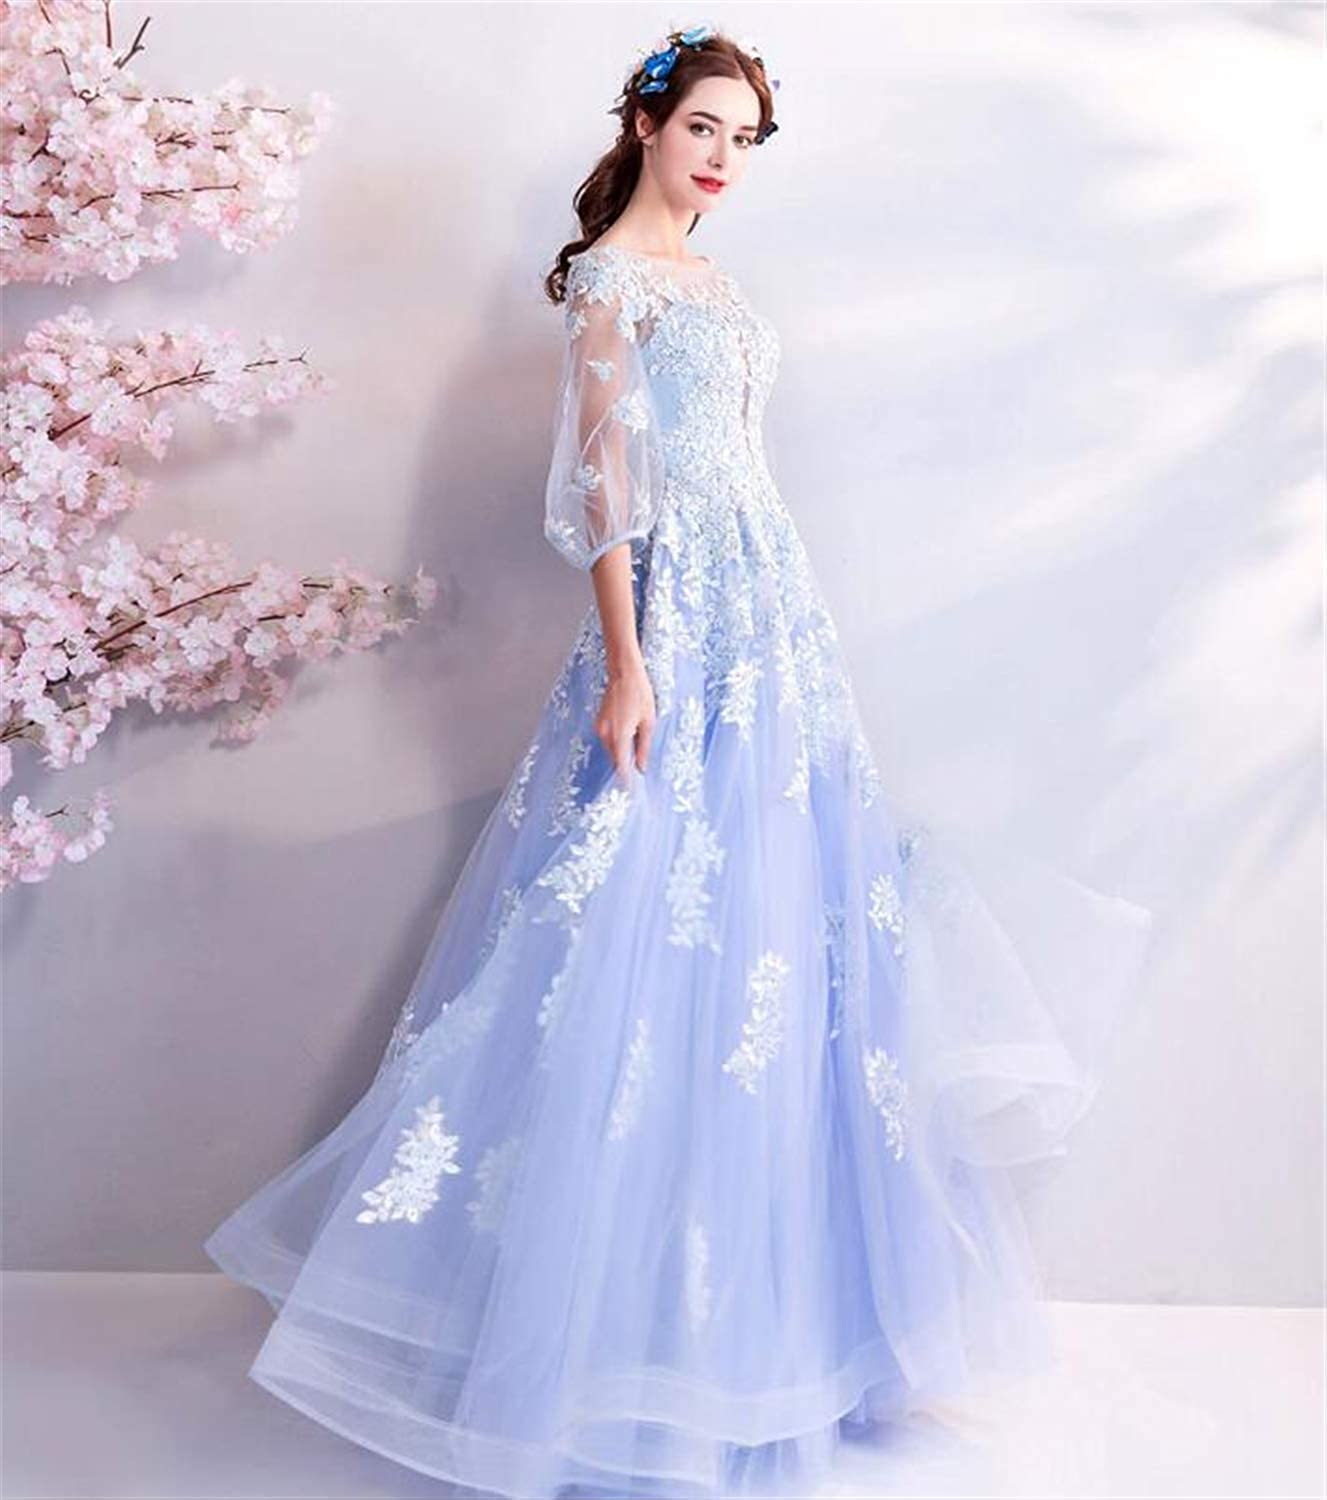 Wedding Dress,Tulle Embroidered Beads, Sexy Elegant Evening Dress, Light bluee Wedding Dress No. 07470